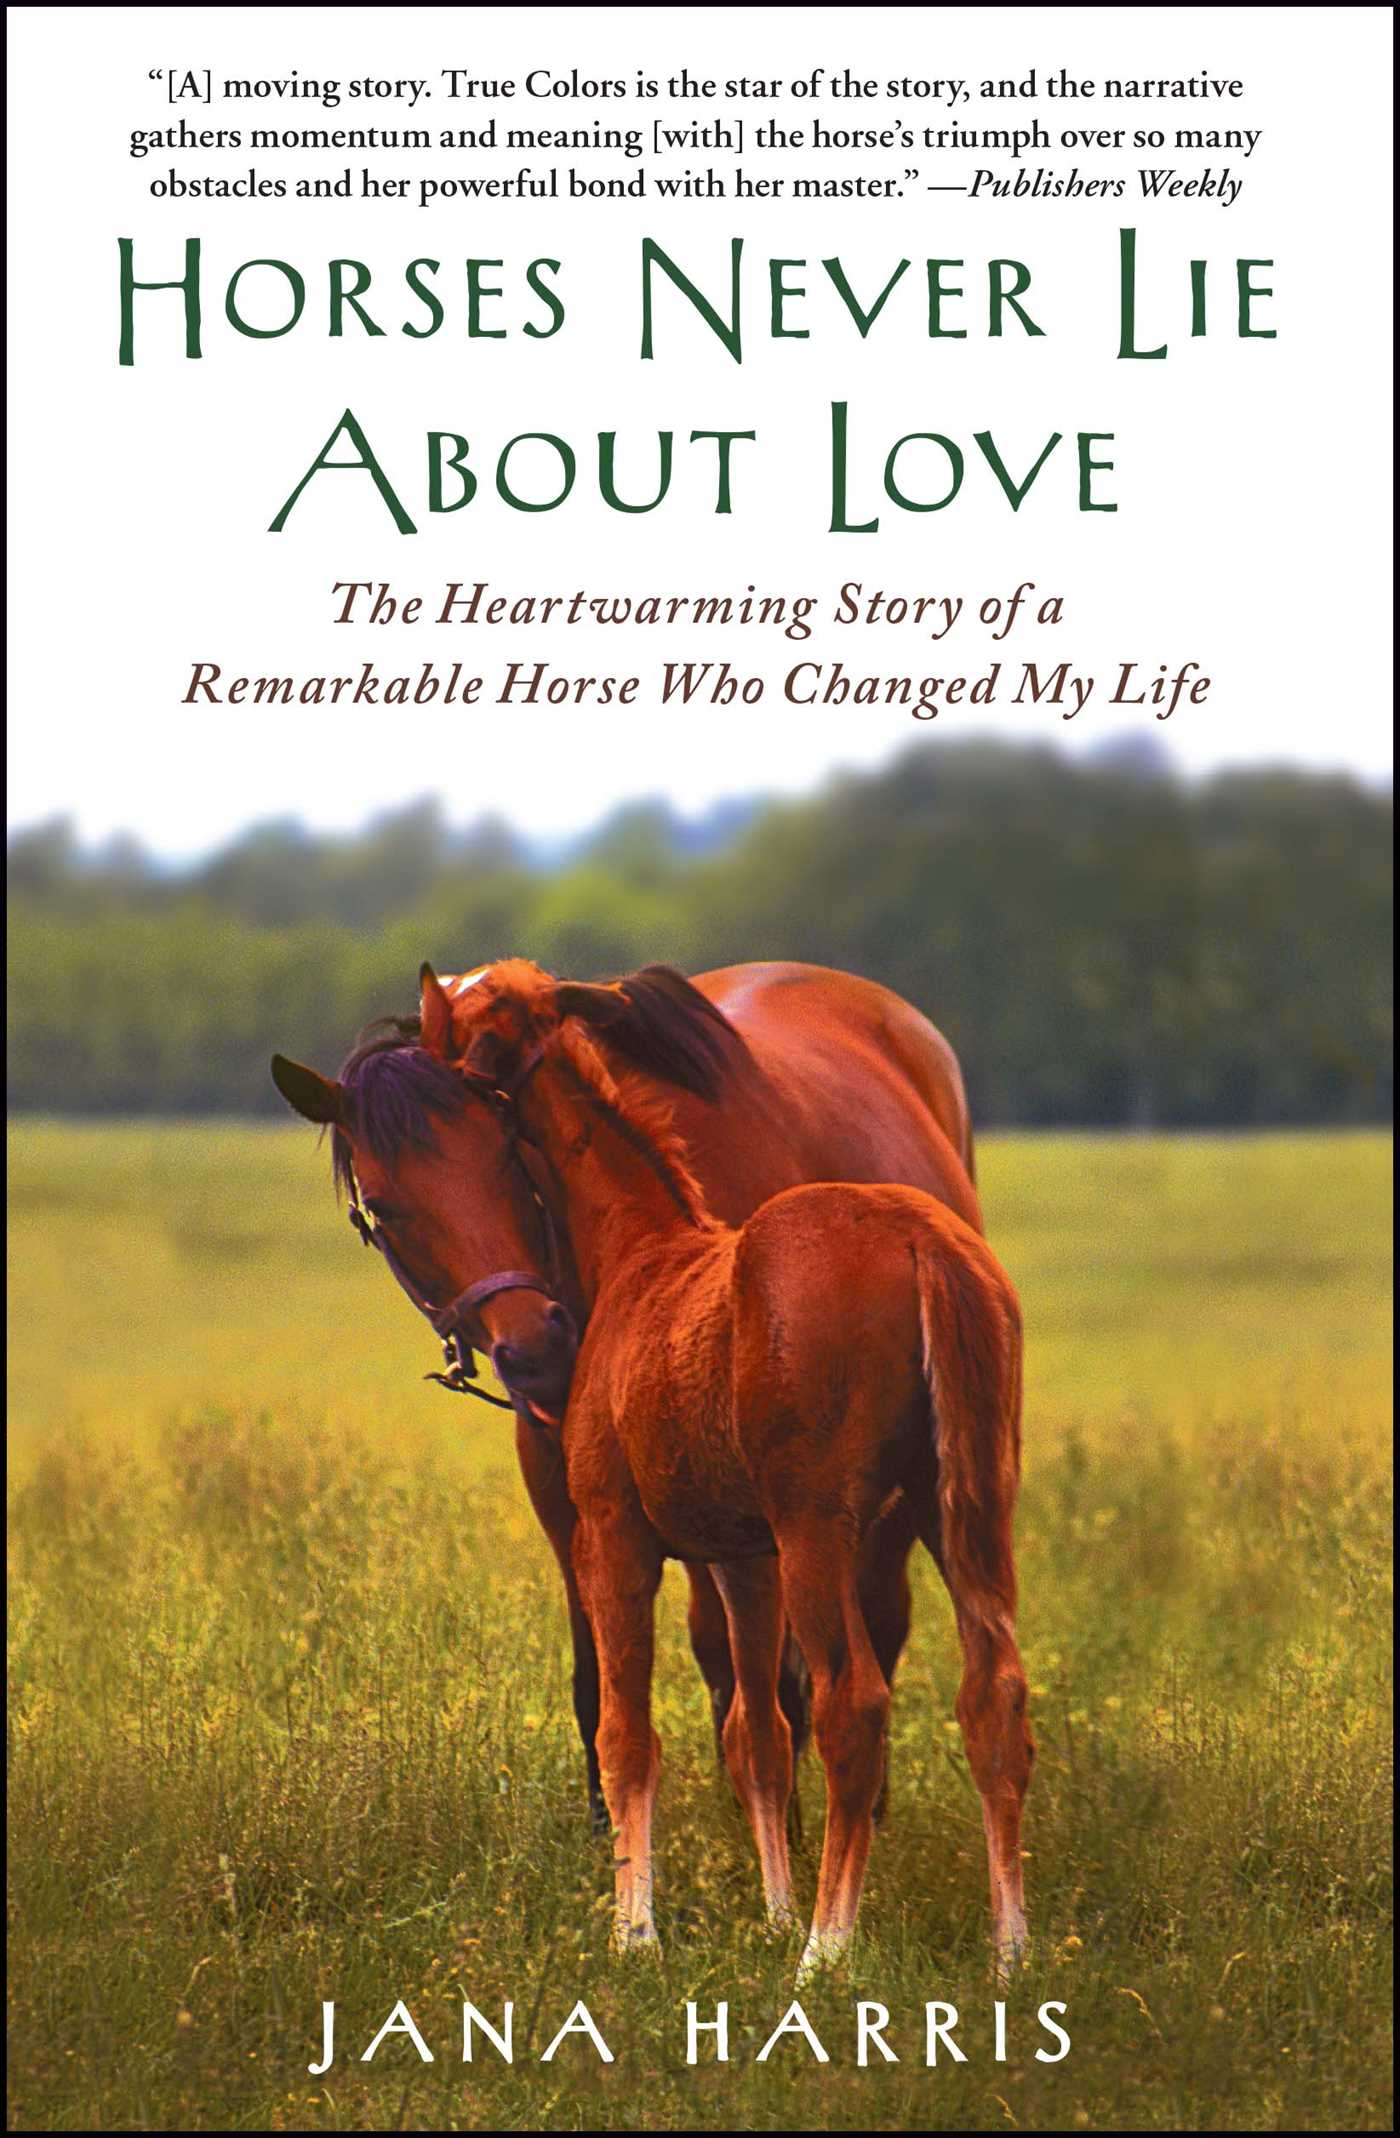 Horses-never-lie-about-love-9781451605853_hr